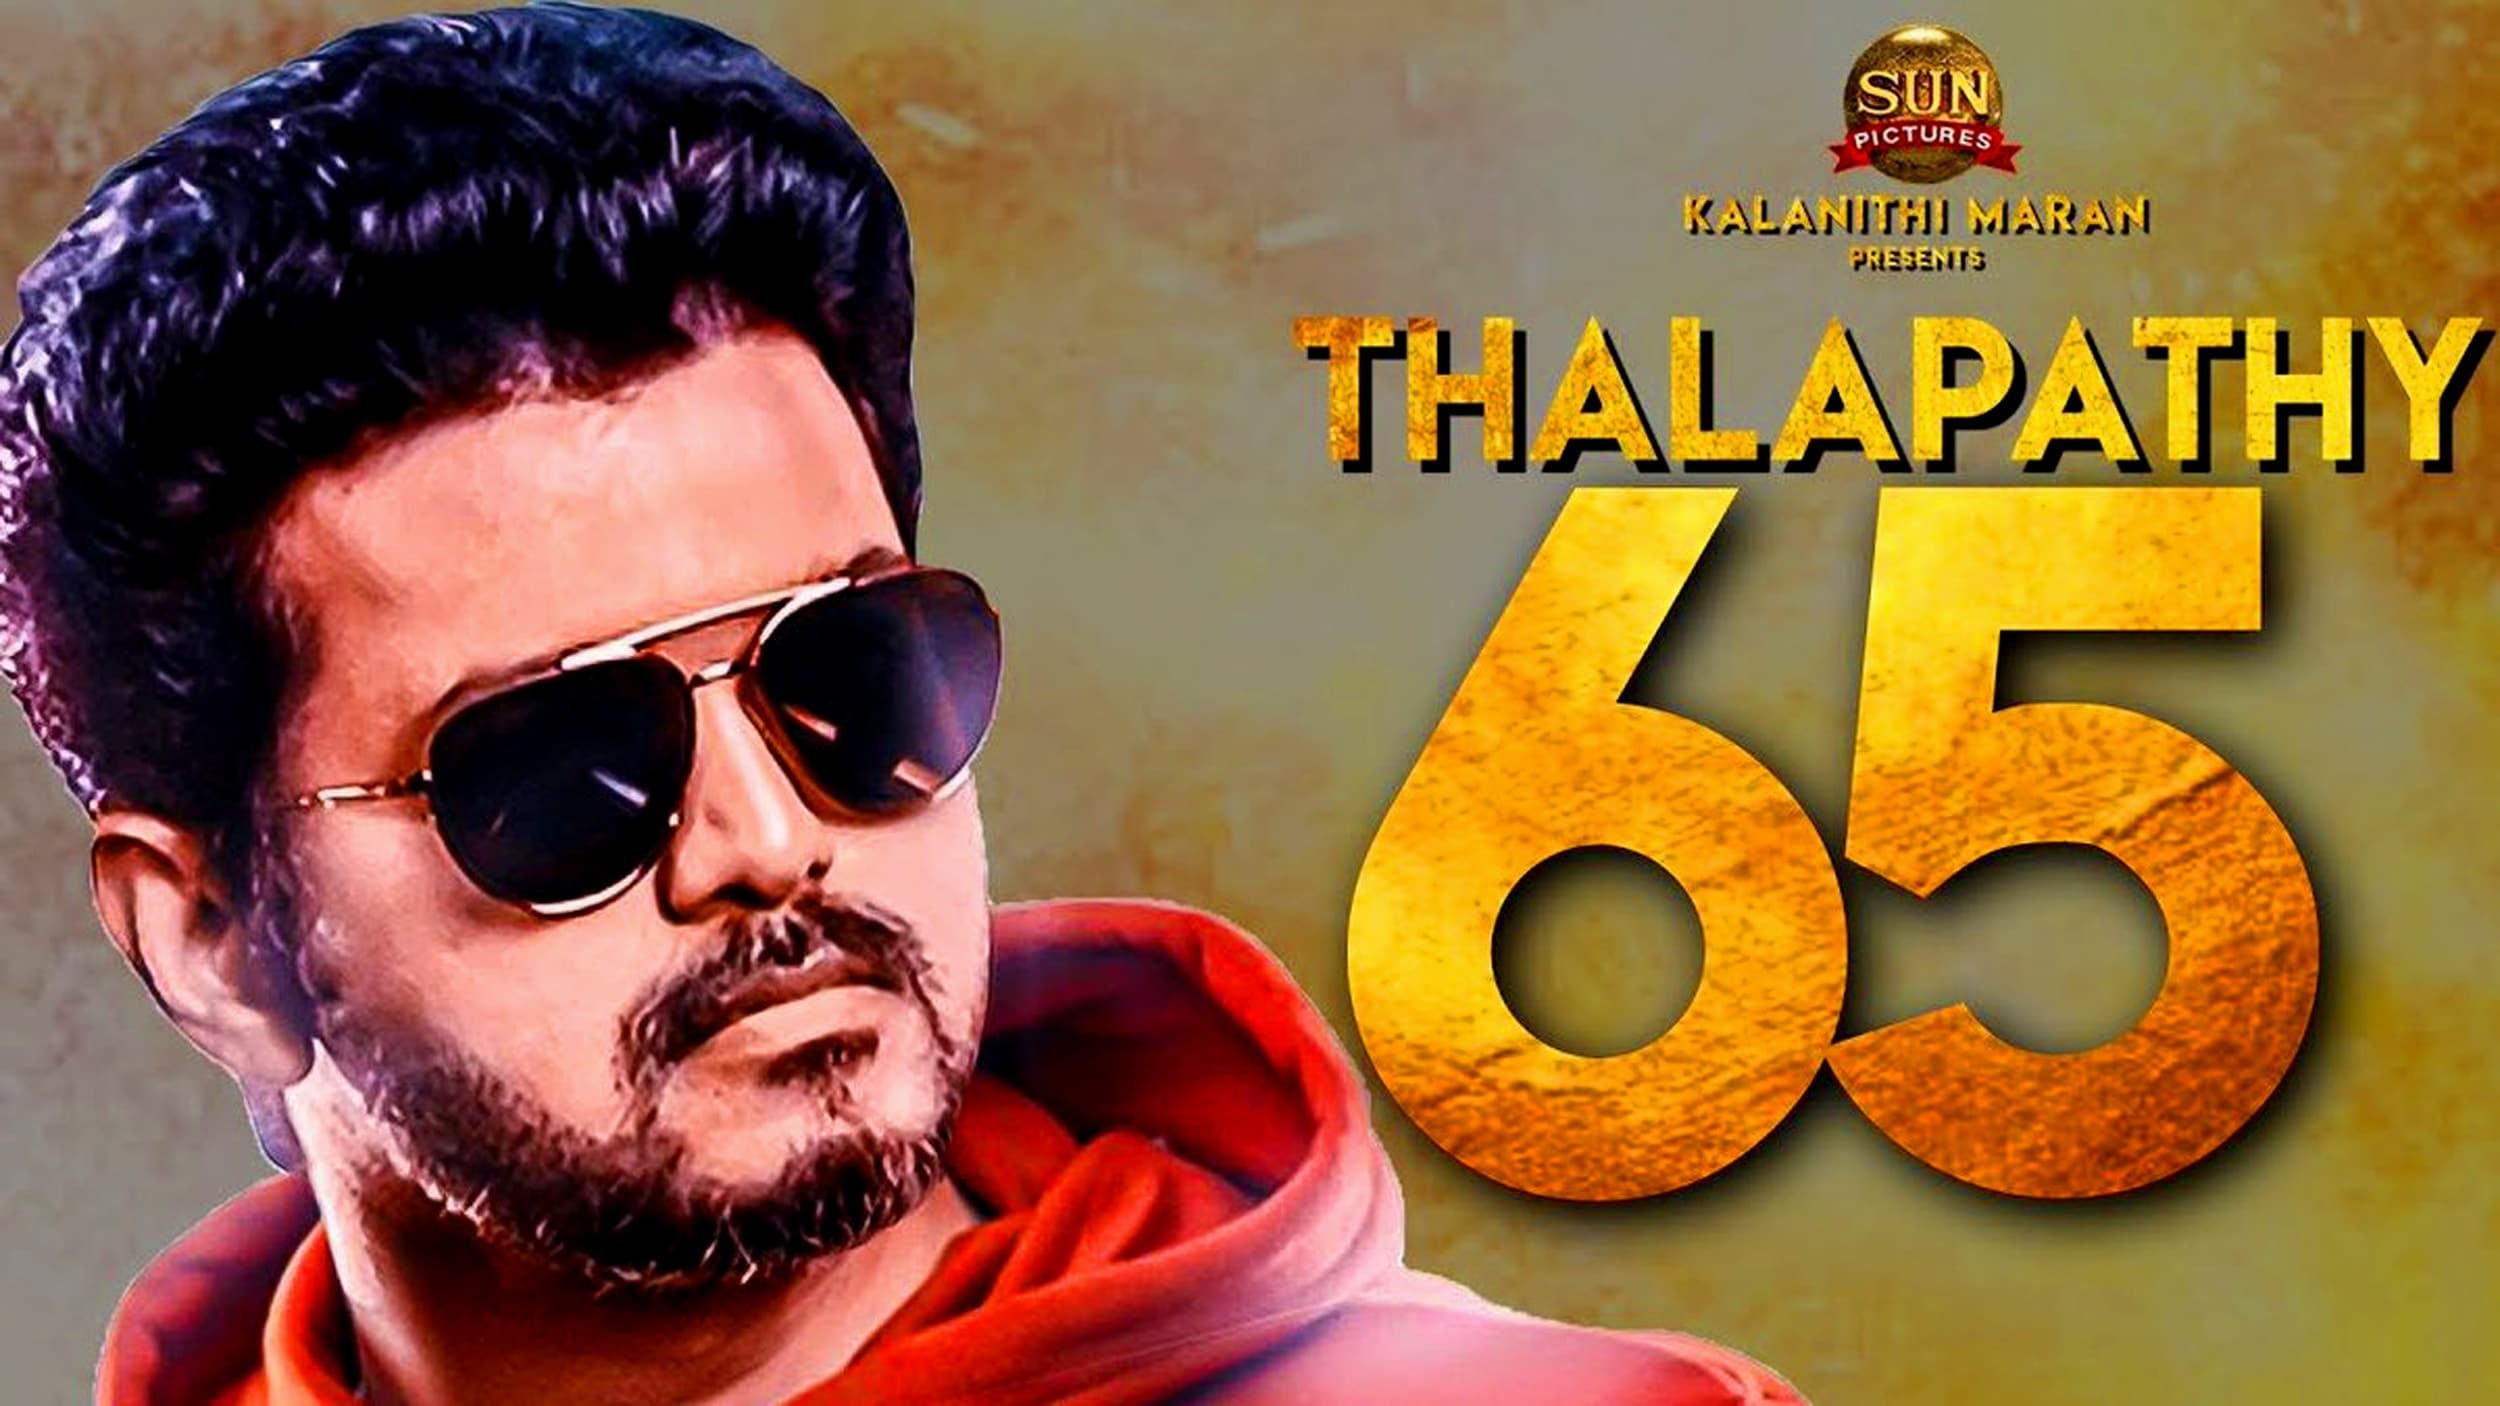 Thalapathy 65 Movie News Details